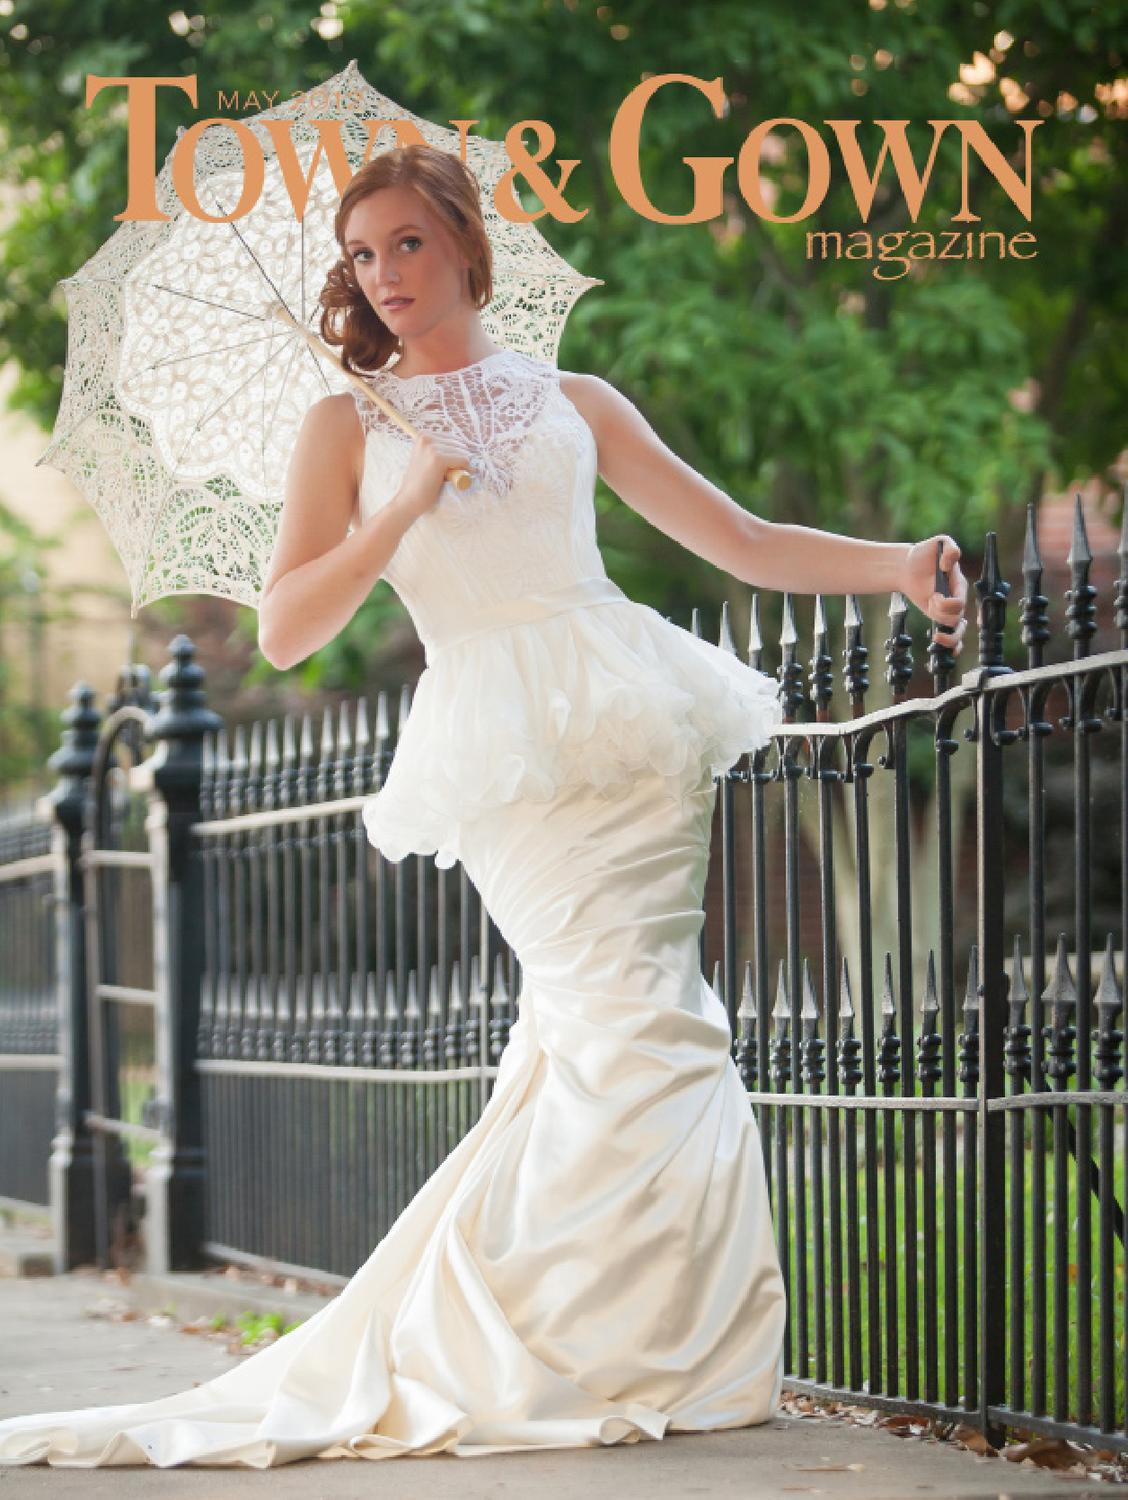 Town and Gown Magazine by Town and Gown Magazine - issuu